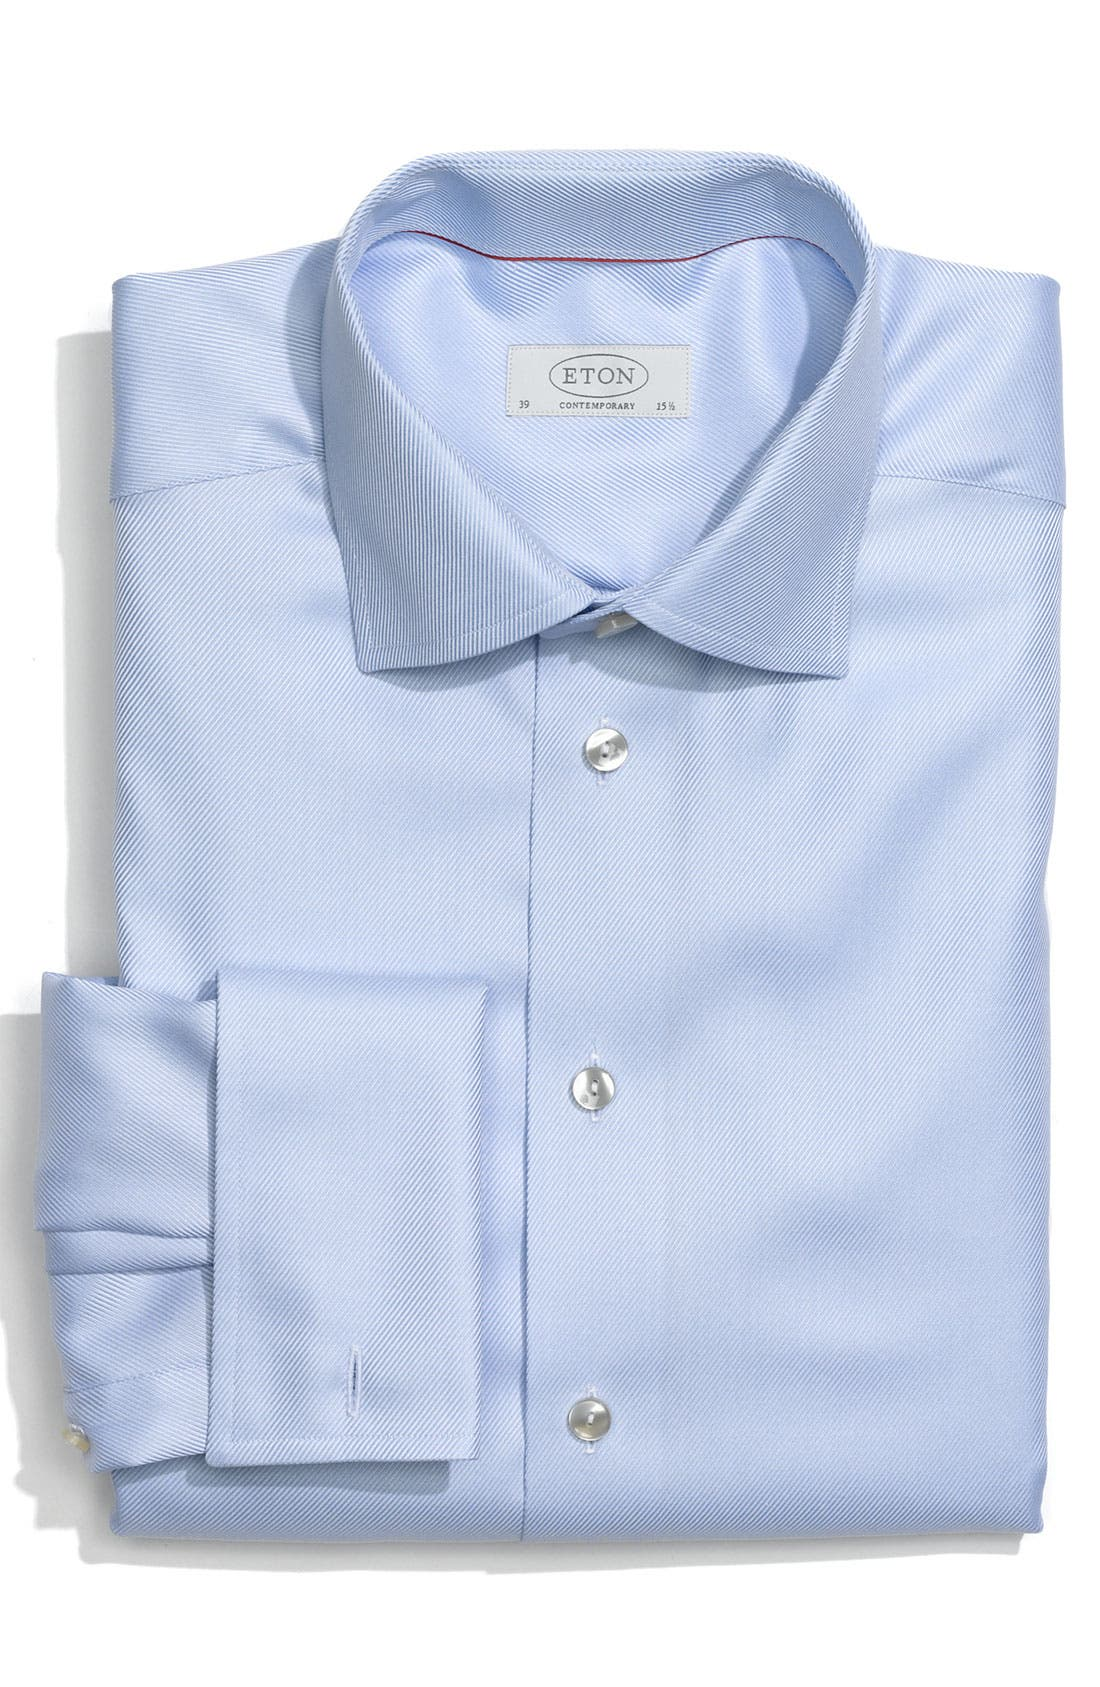 Alternate Image 1 Selected - Eton Contemporary Fit Dress Shirt (Online Only)